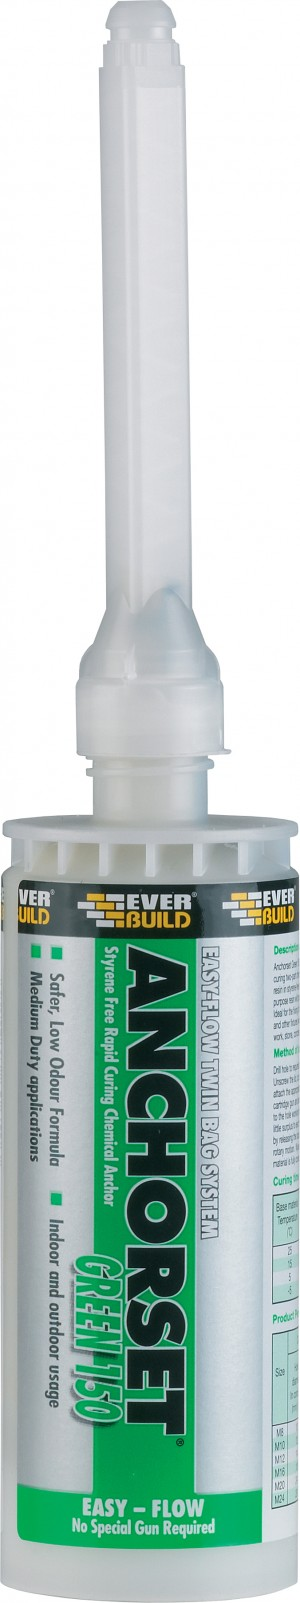 SikaEverbuild Anchorset Resin Green 150ml [SEANCHGRE150]